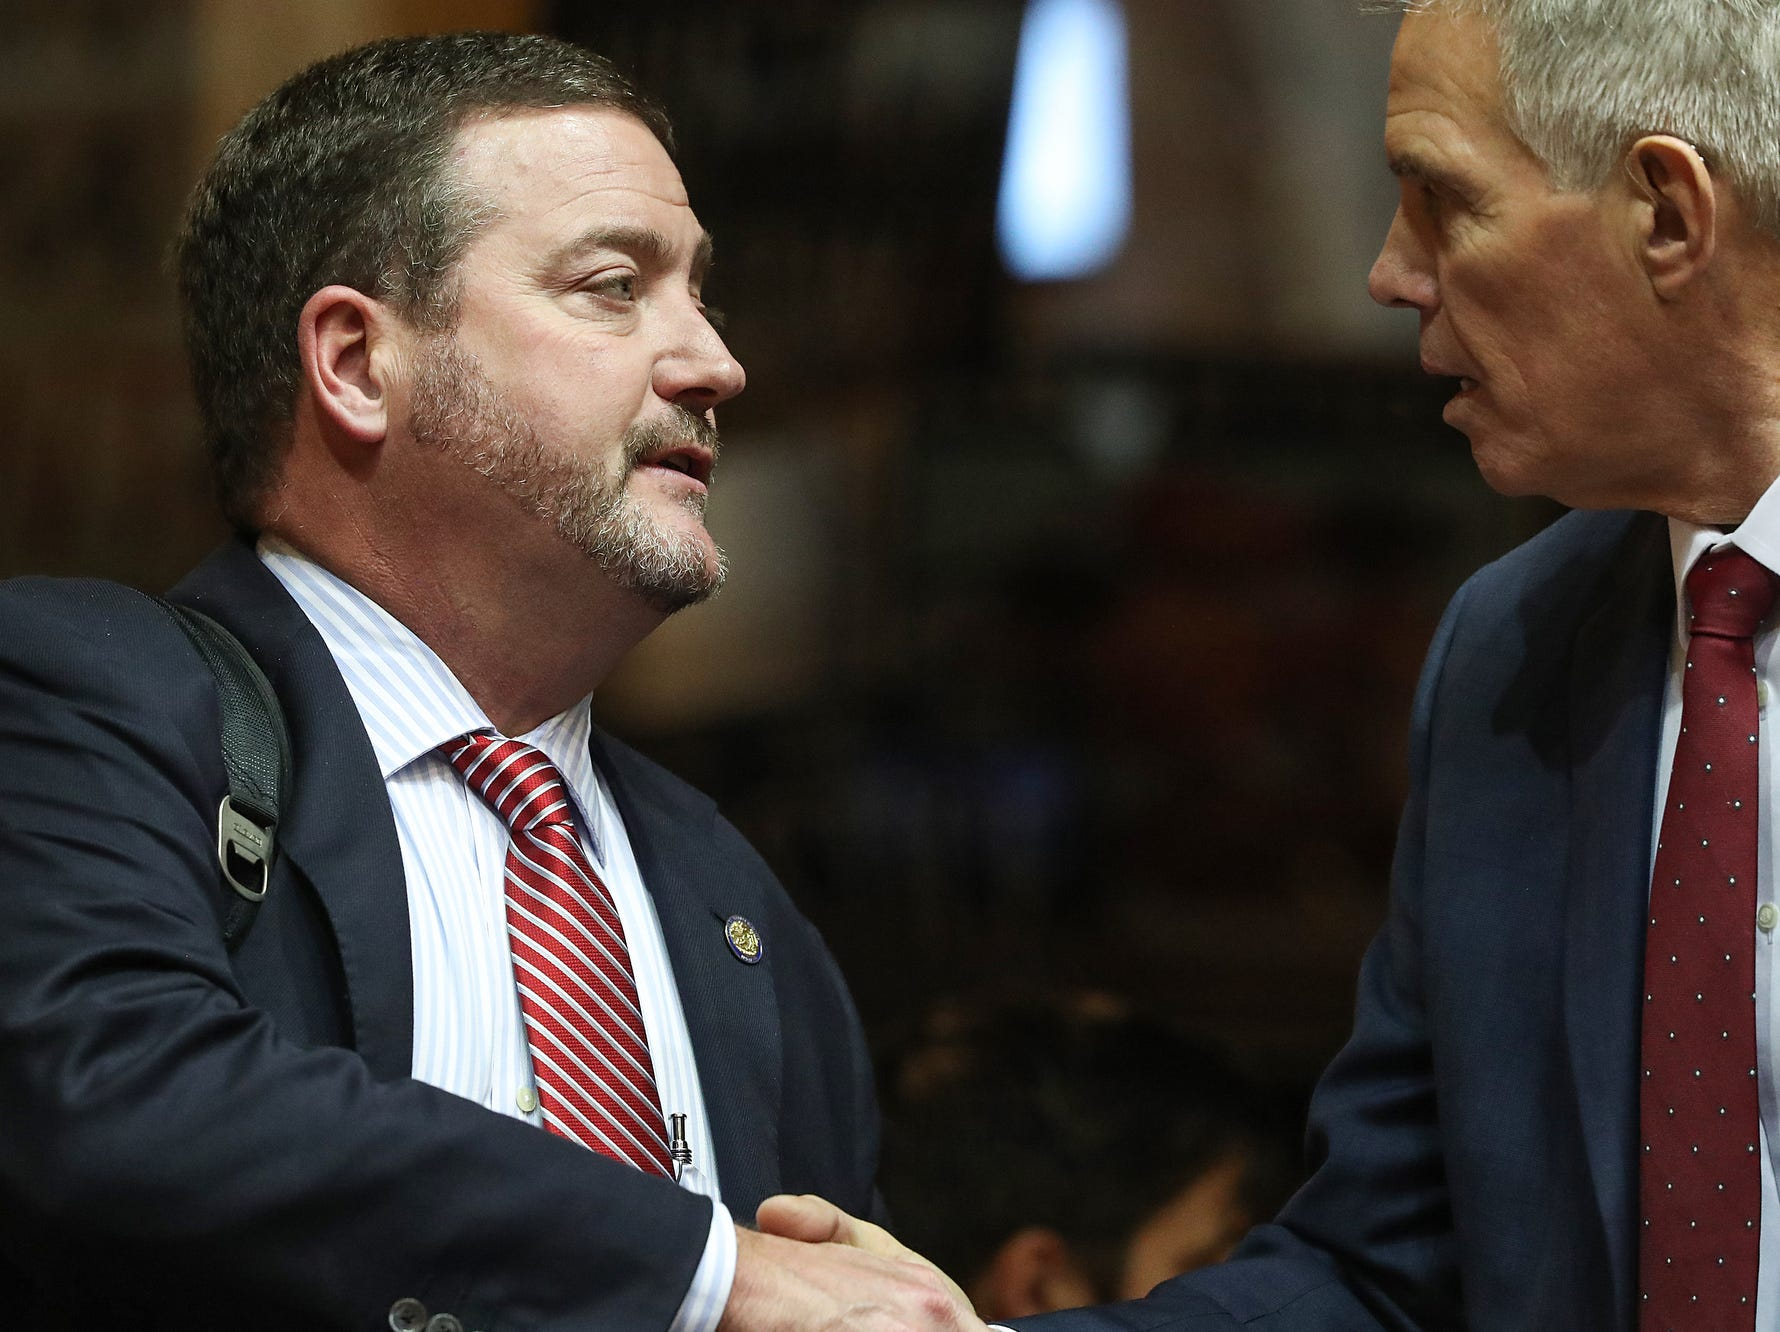 Rep. Chuck Goodrich shakes hand with Rep. David Abbott on the starting day of legislative session at the Indiana Statehouse, Indianapolis, Thursday, Jan. 3, 2019.